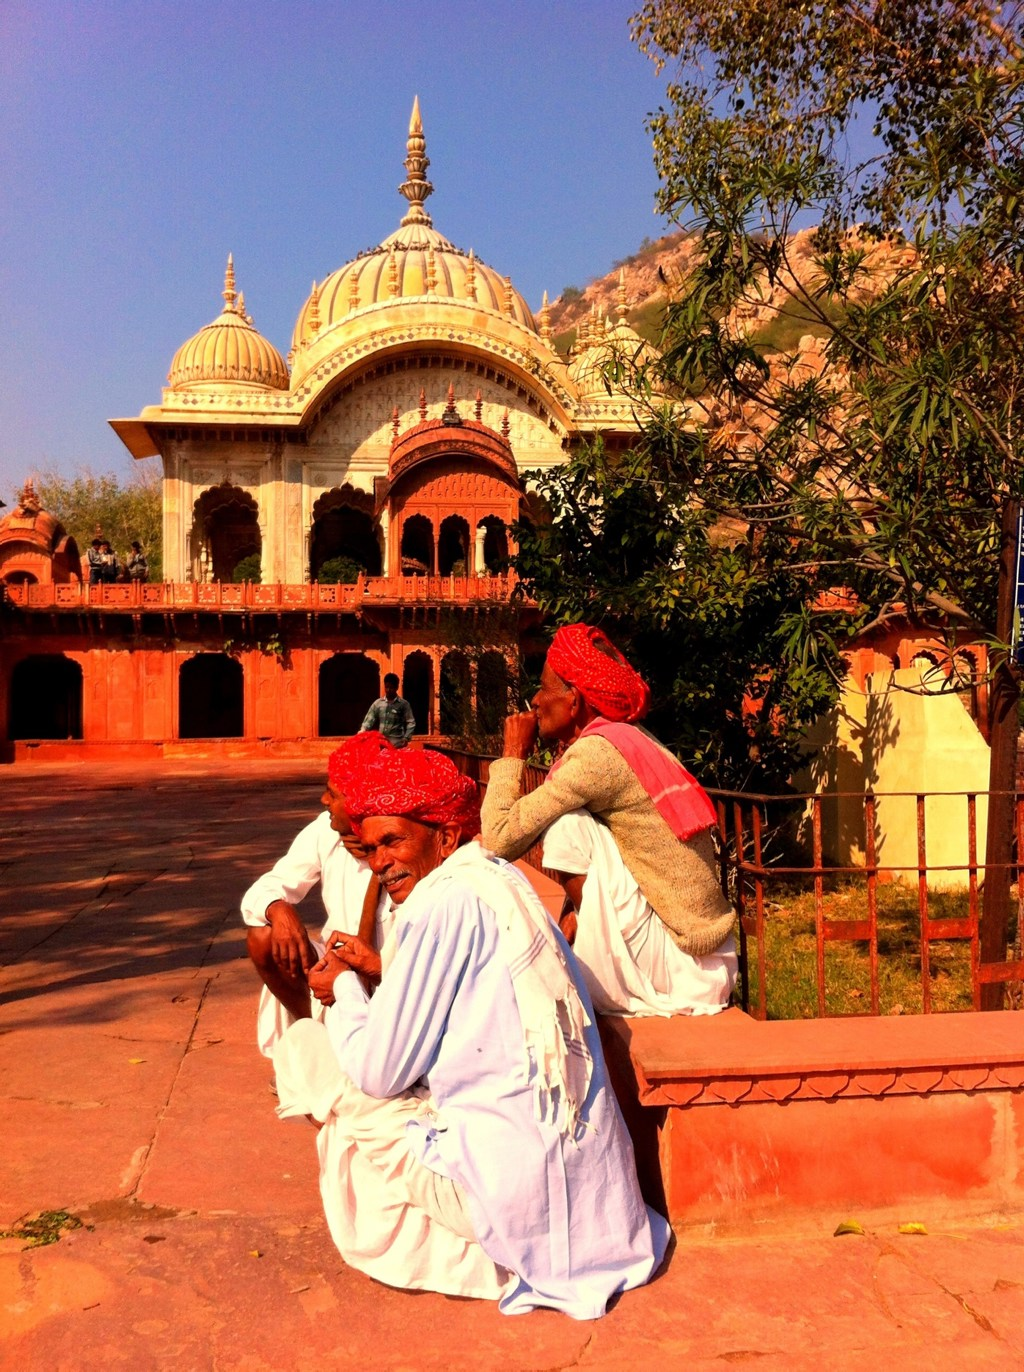 Alwar - what a great place!